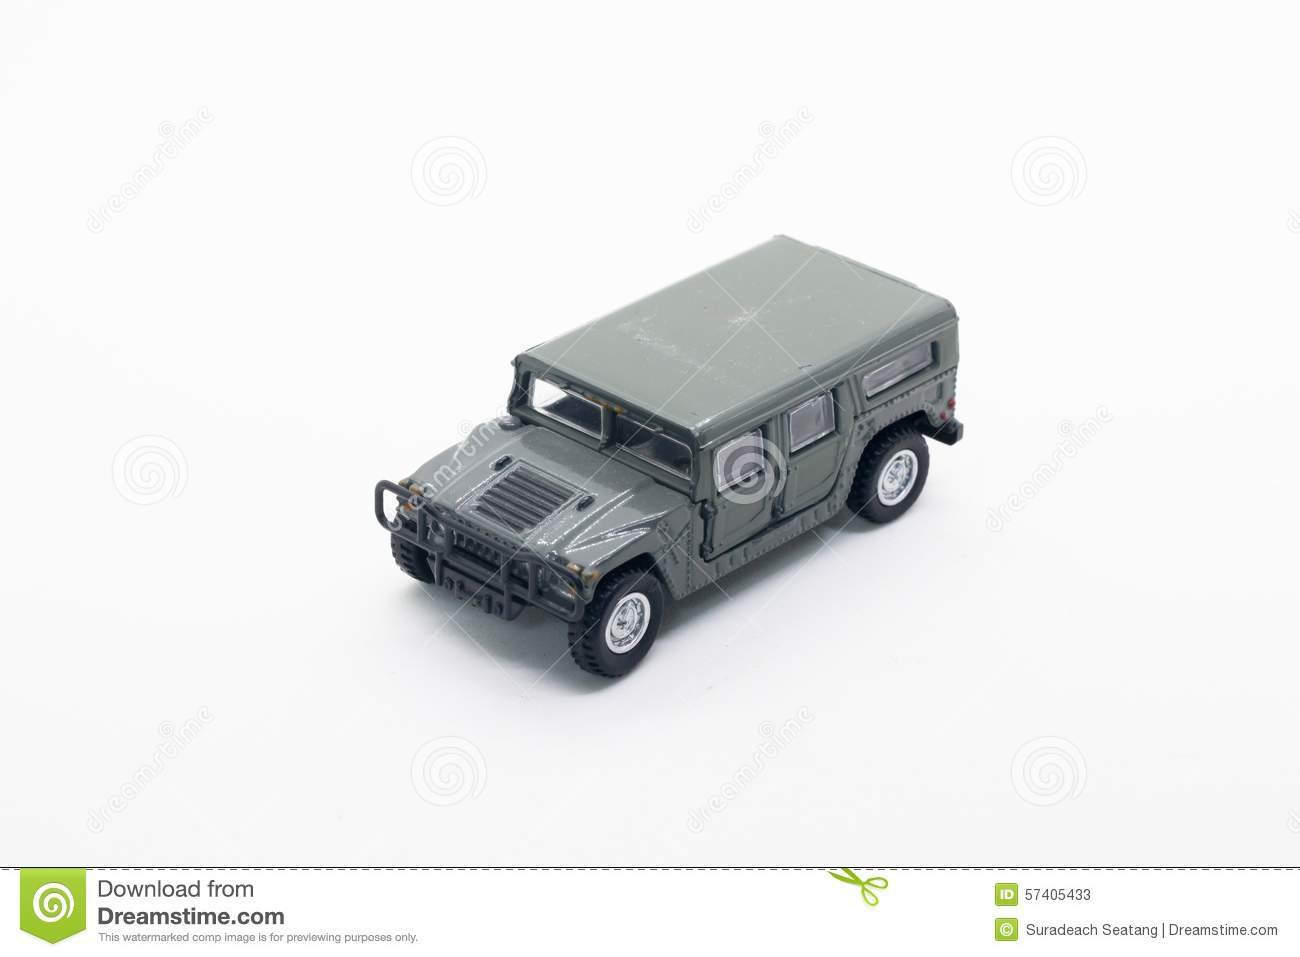 military truck model toy